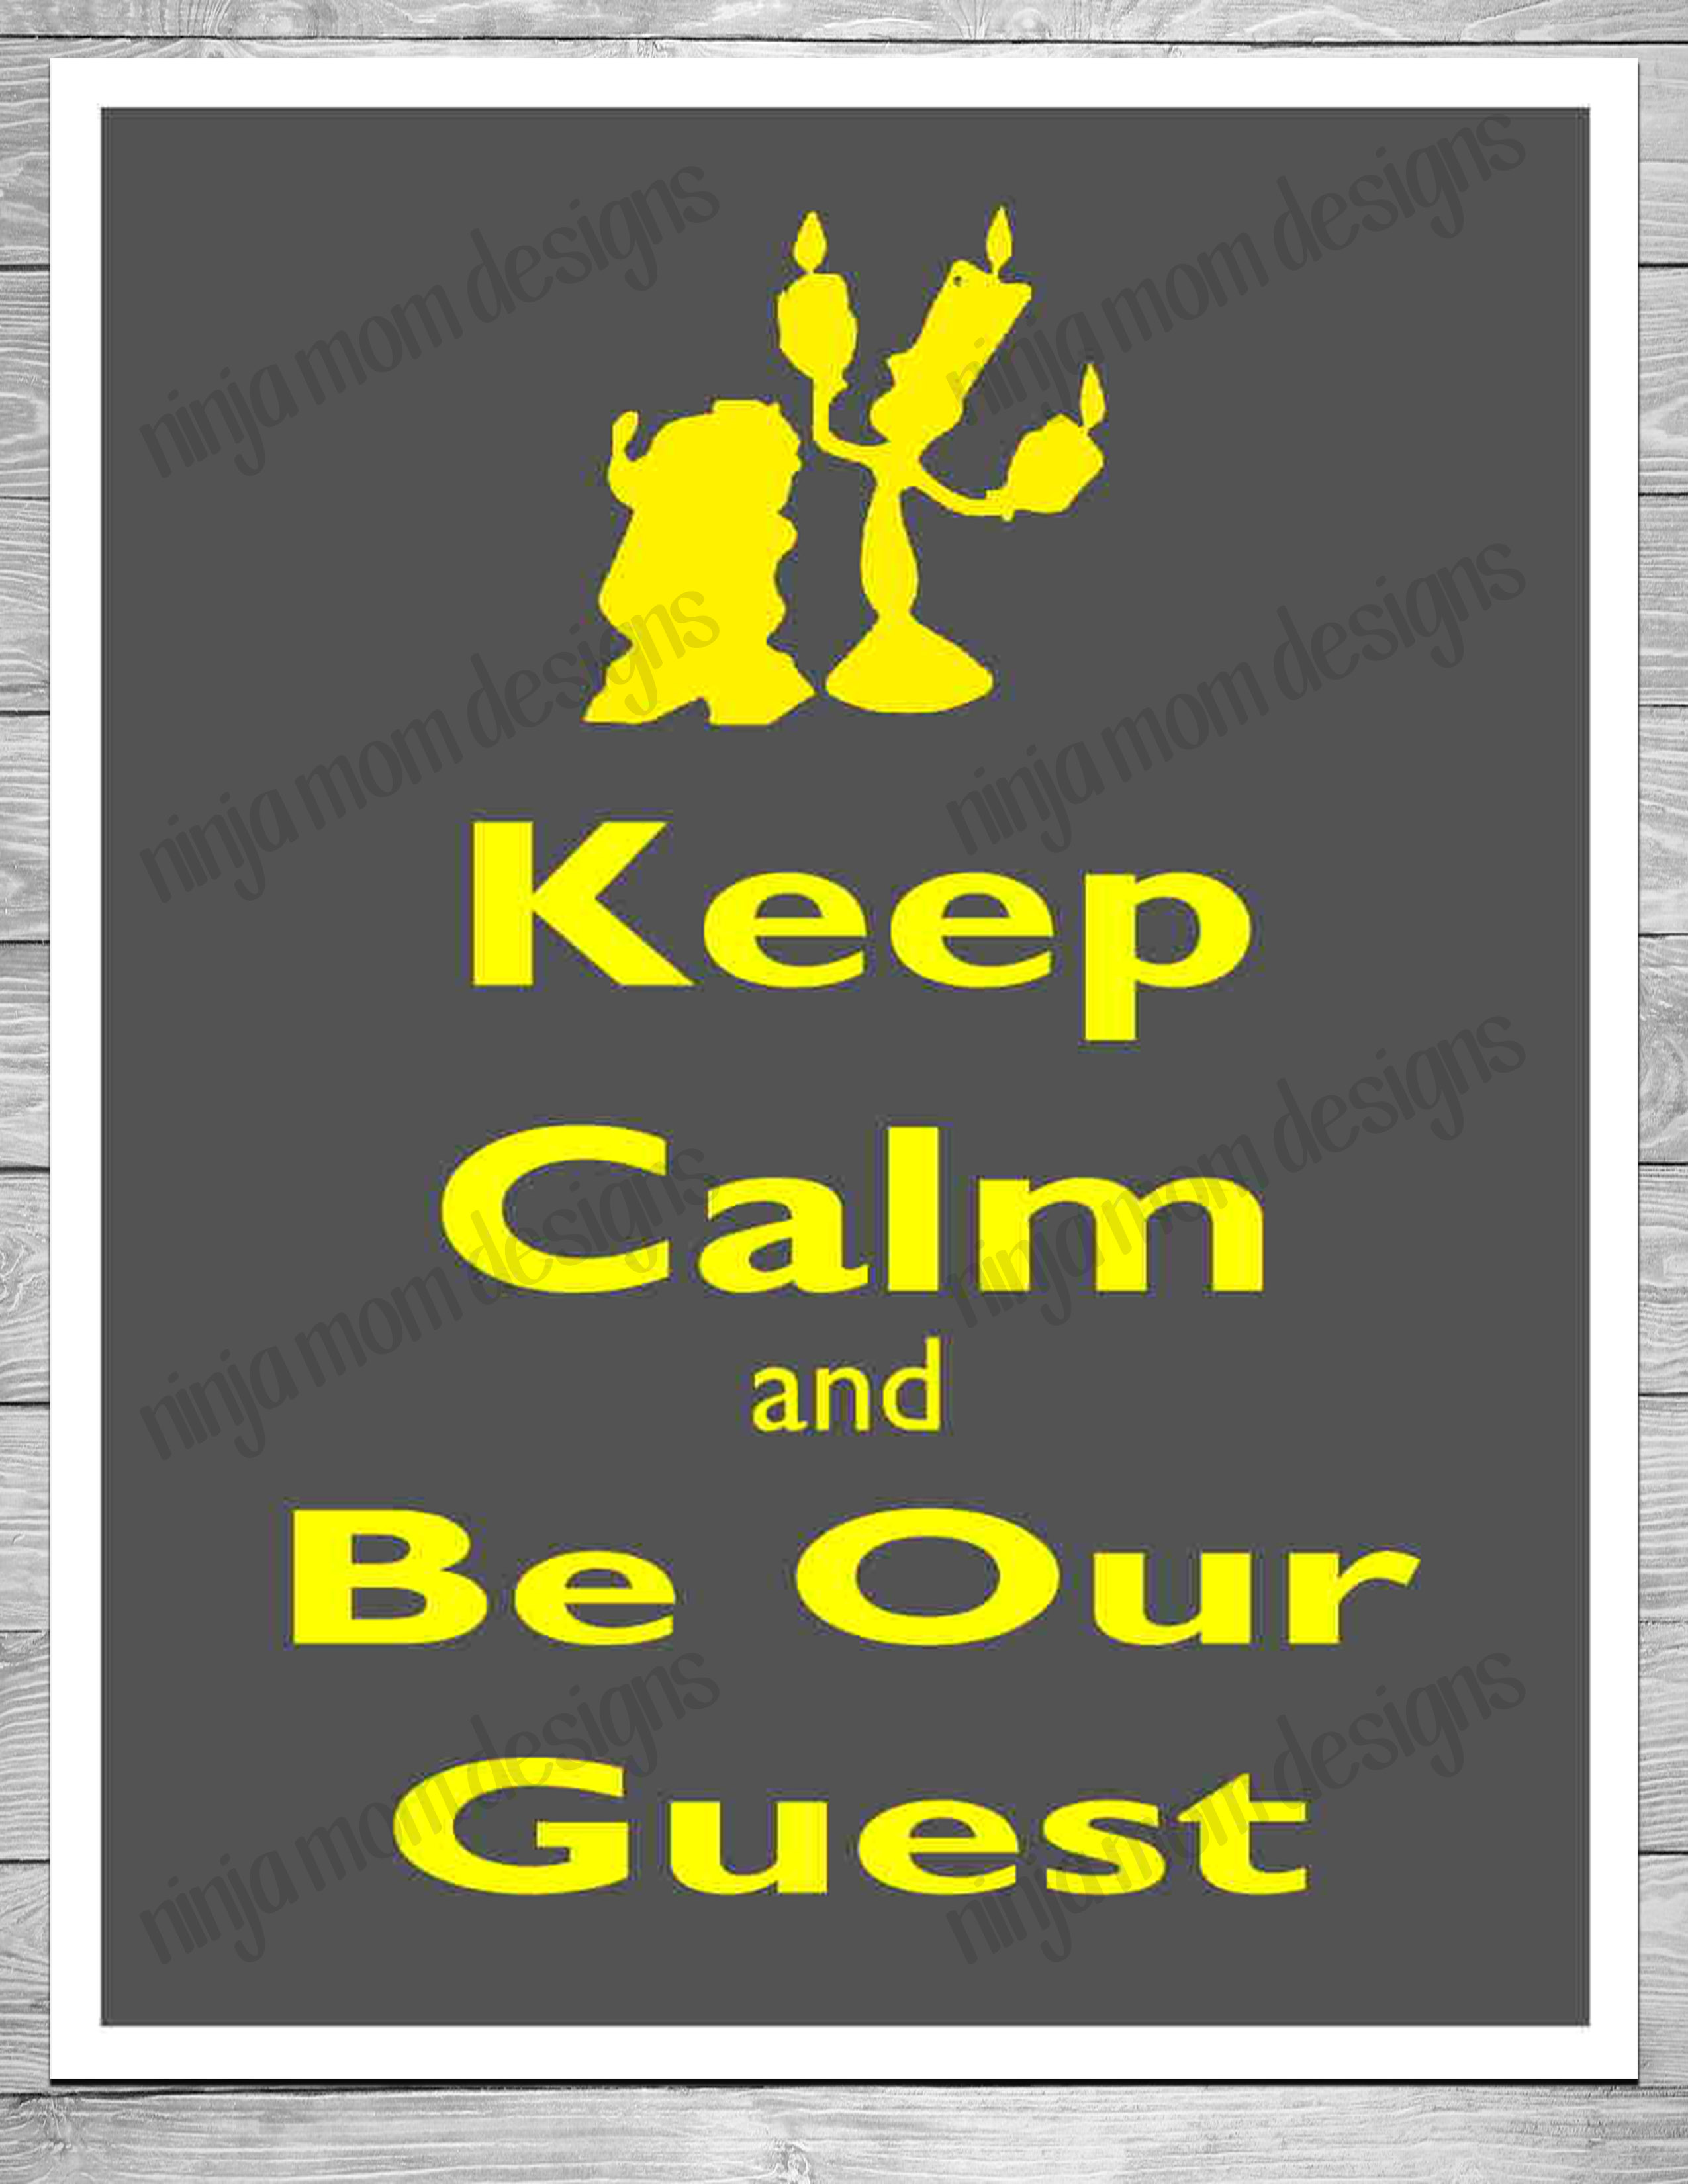 image regarding Be Our Guest Printable called Free of charge Preserve Serene and Be Our Visitor Printable